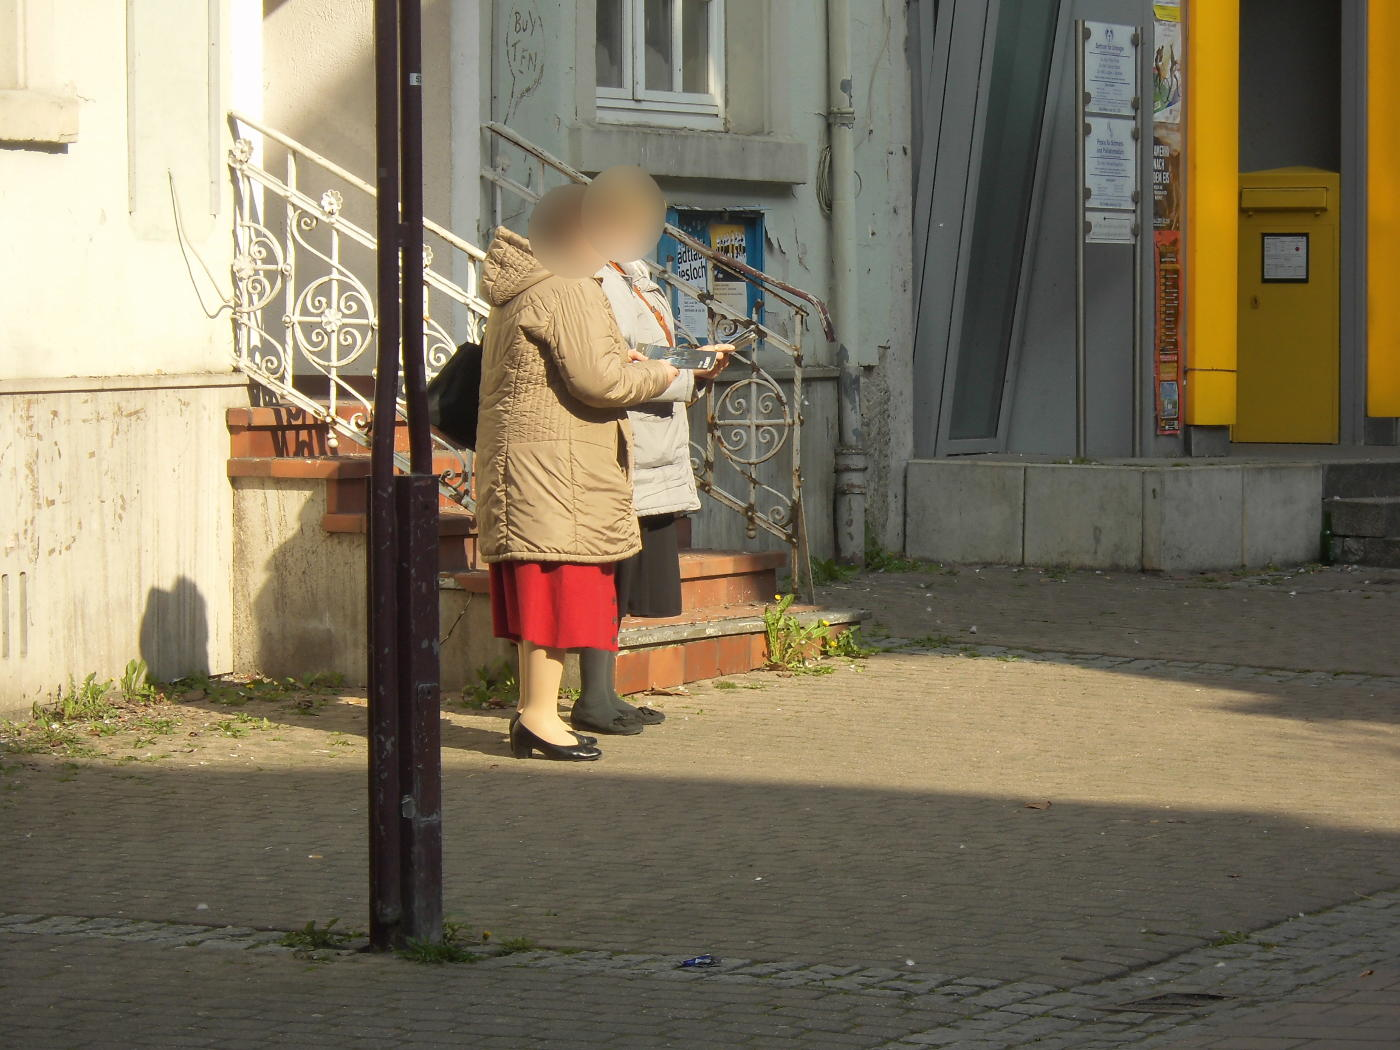 Wiesloch: Jehovah's Witness stronghold? Saturdays never.